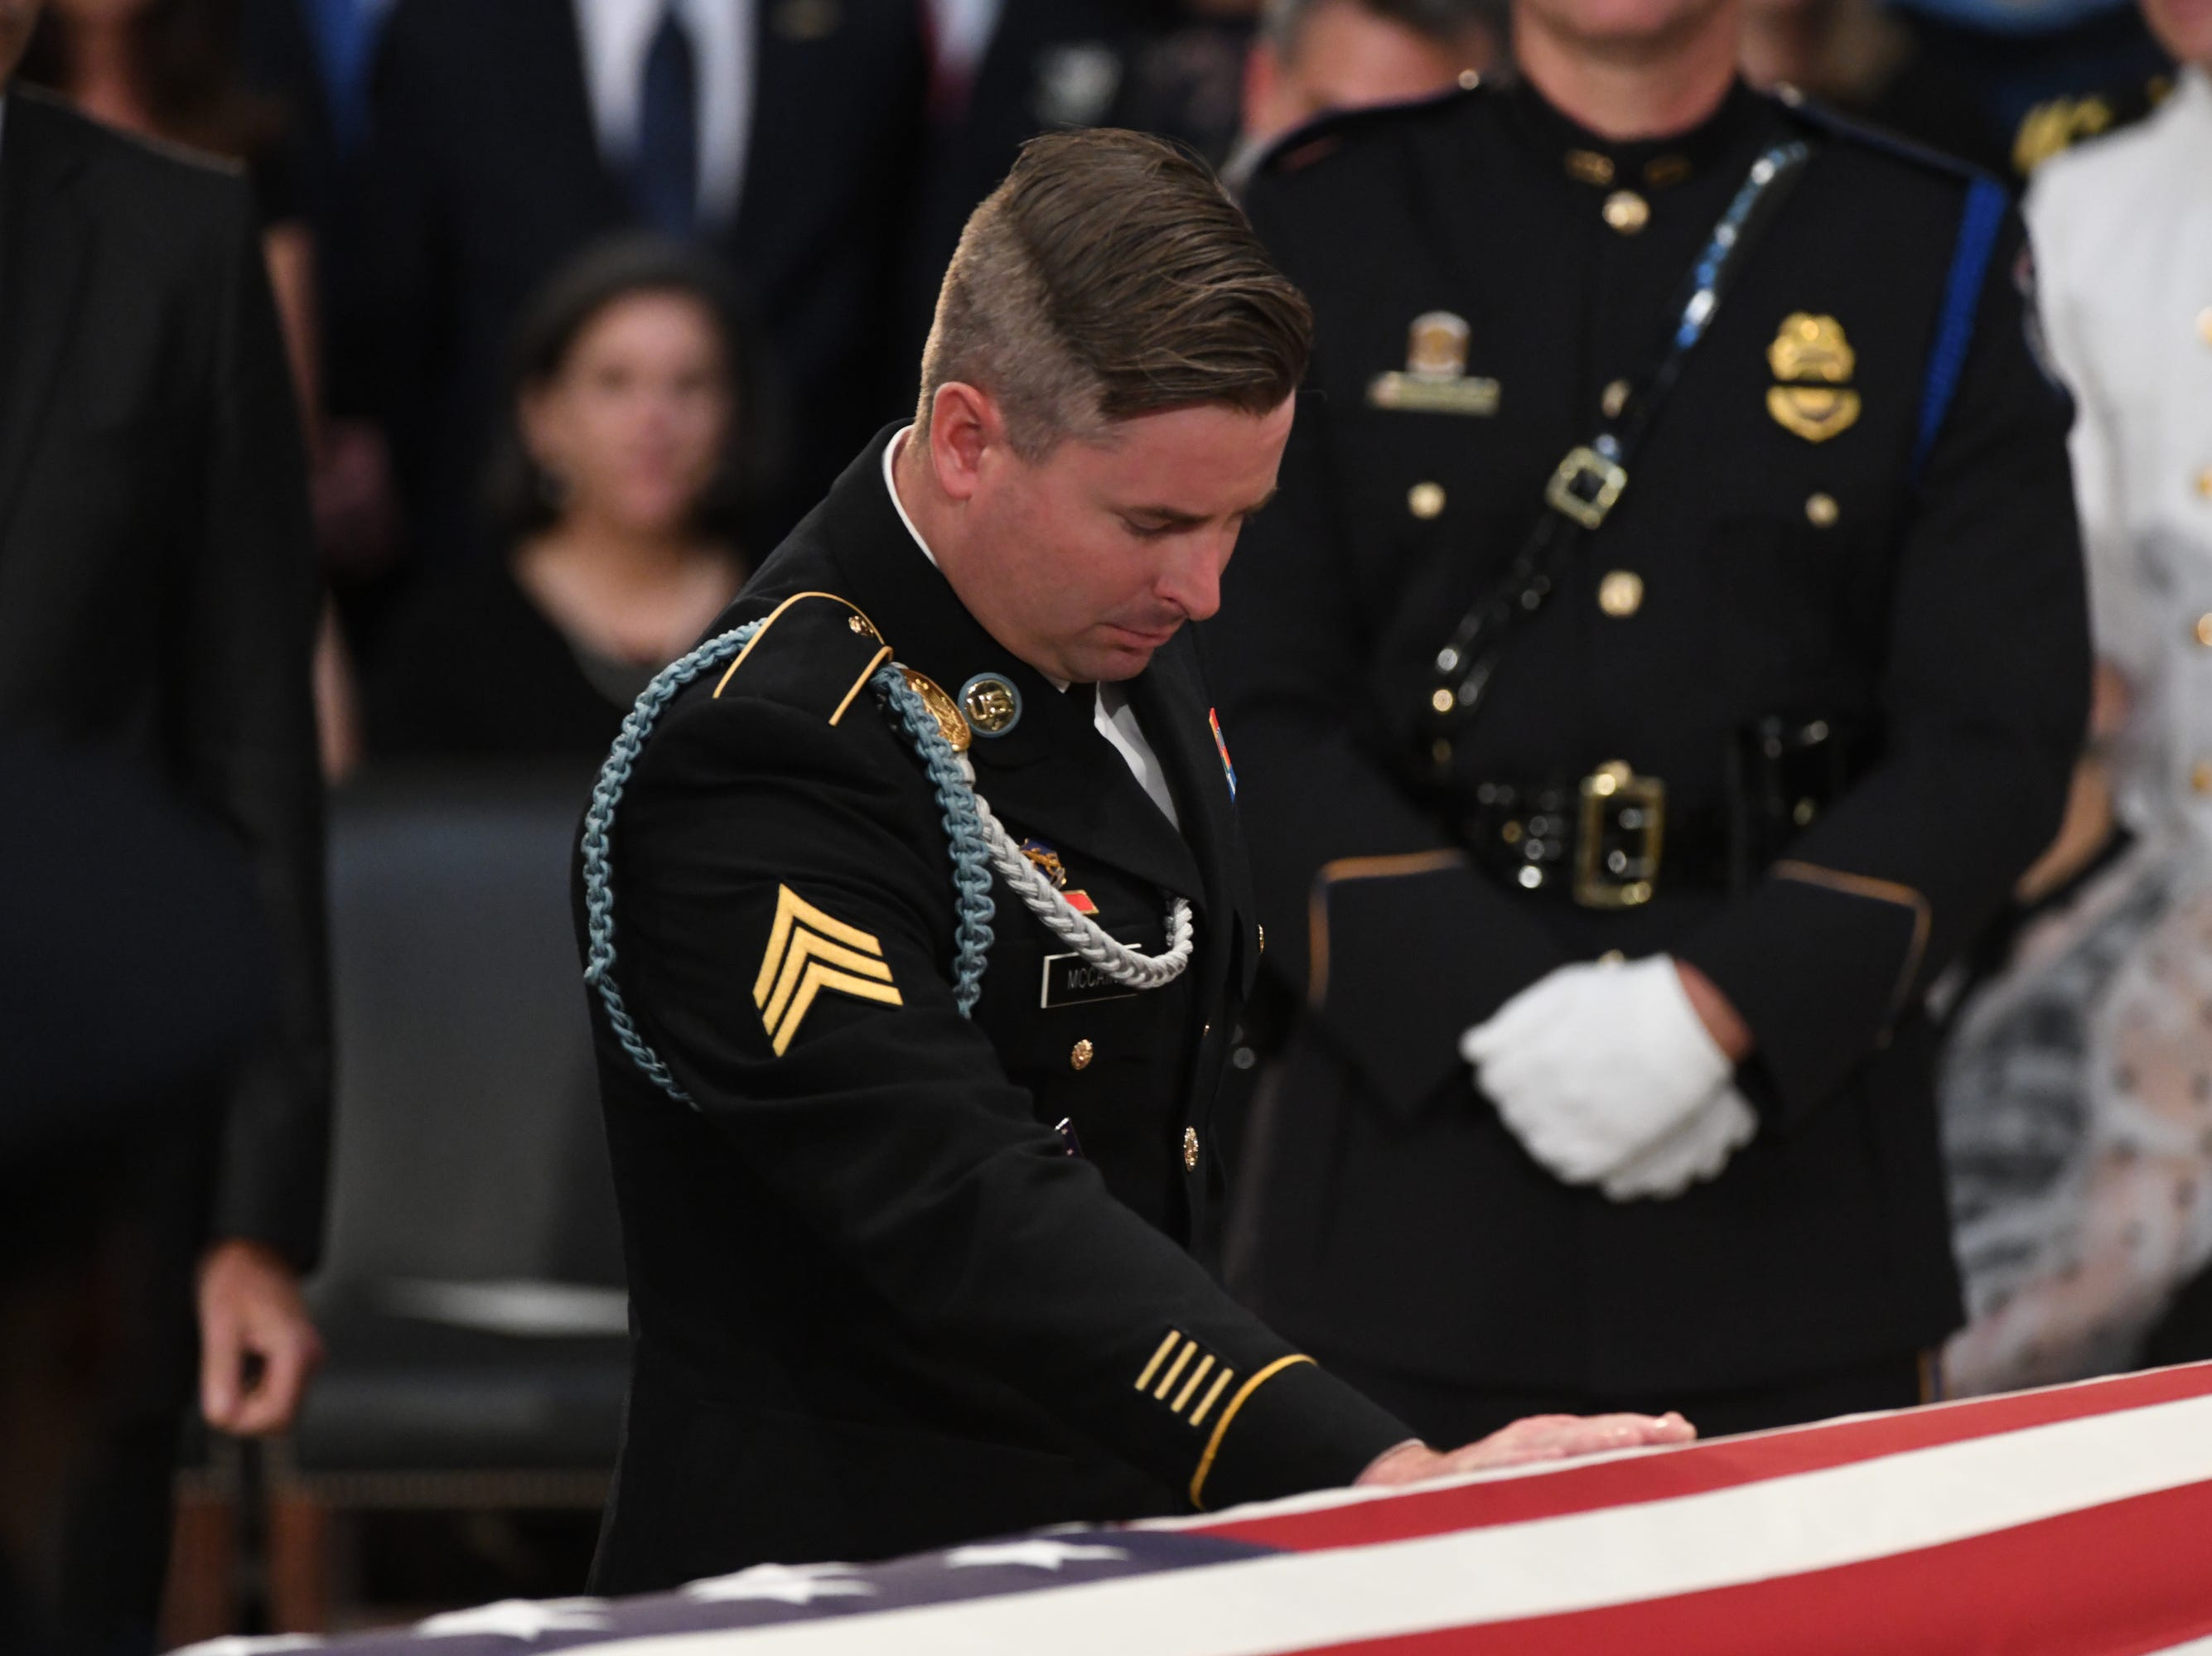 8/31/18 11:25:19 AM -- Washington, DC, U.S.A  -- Jimmy McCain leans on his father's casket as the body of John McCain lies in state at the U.S. Capitol in Washington on Aug. 31, 2018 in Washington. Sen. McCain died on Aug. 25. --    Photo by Jasper Colt, USA TODAY Staff